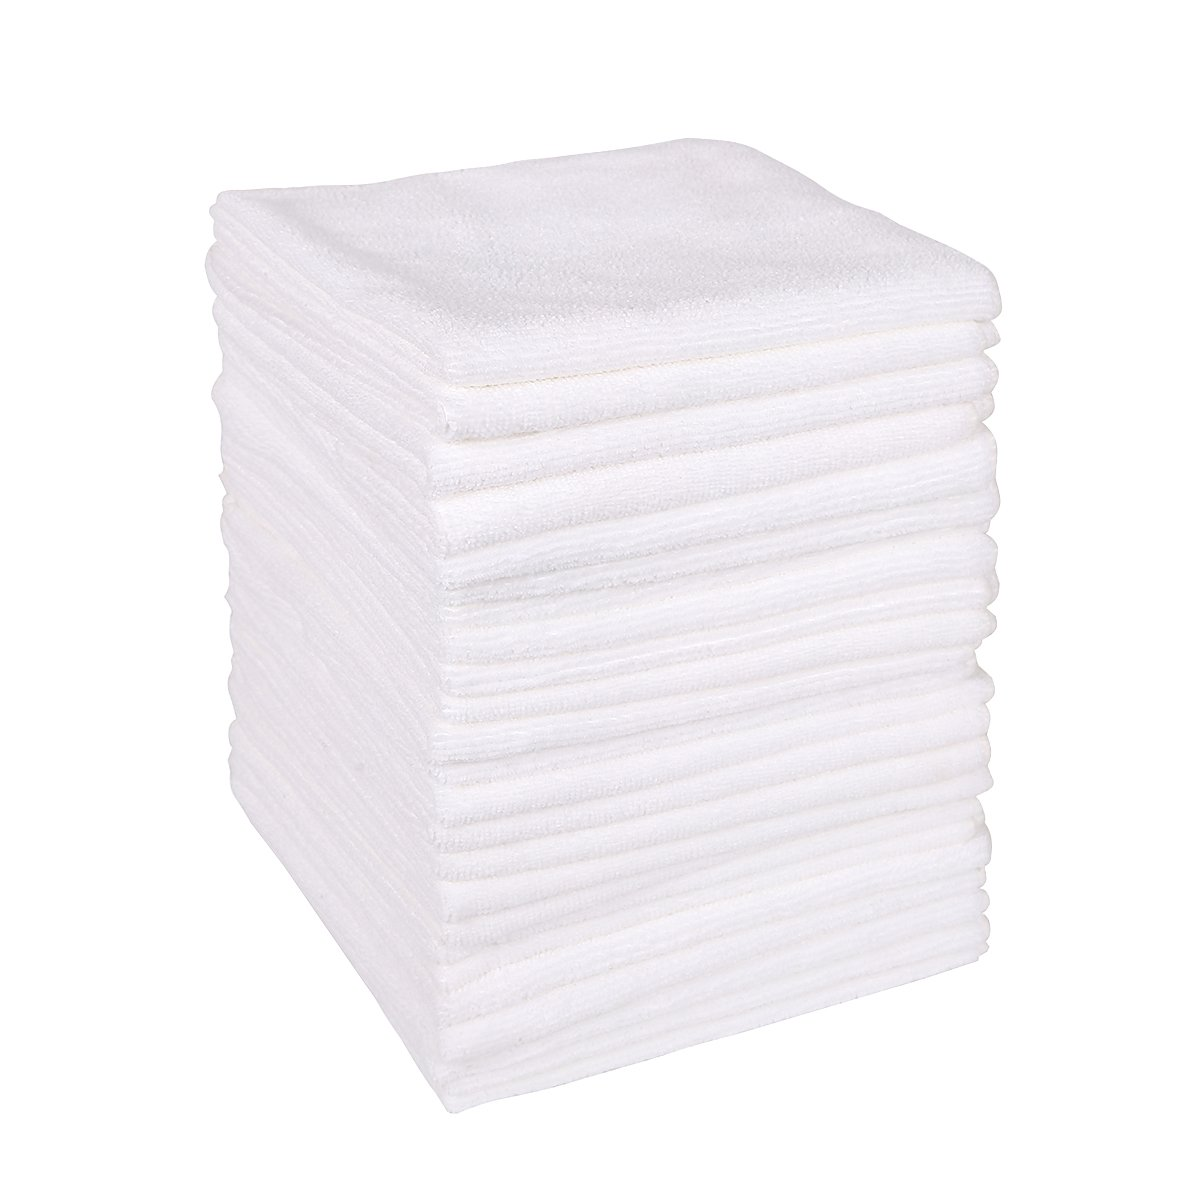 Wipela (24-Pack) 350gsm 15.7'' x15.7'' Microfiber Cleaning Cloth clean kitchen, household, automobile and furniture for dust removal, scrubbing, polishing and drying (White Color)